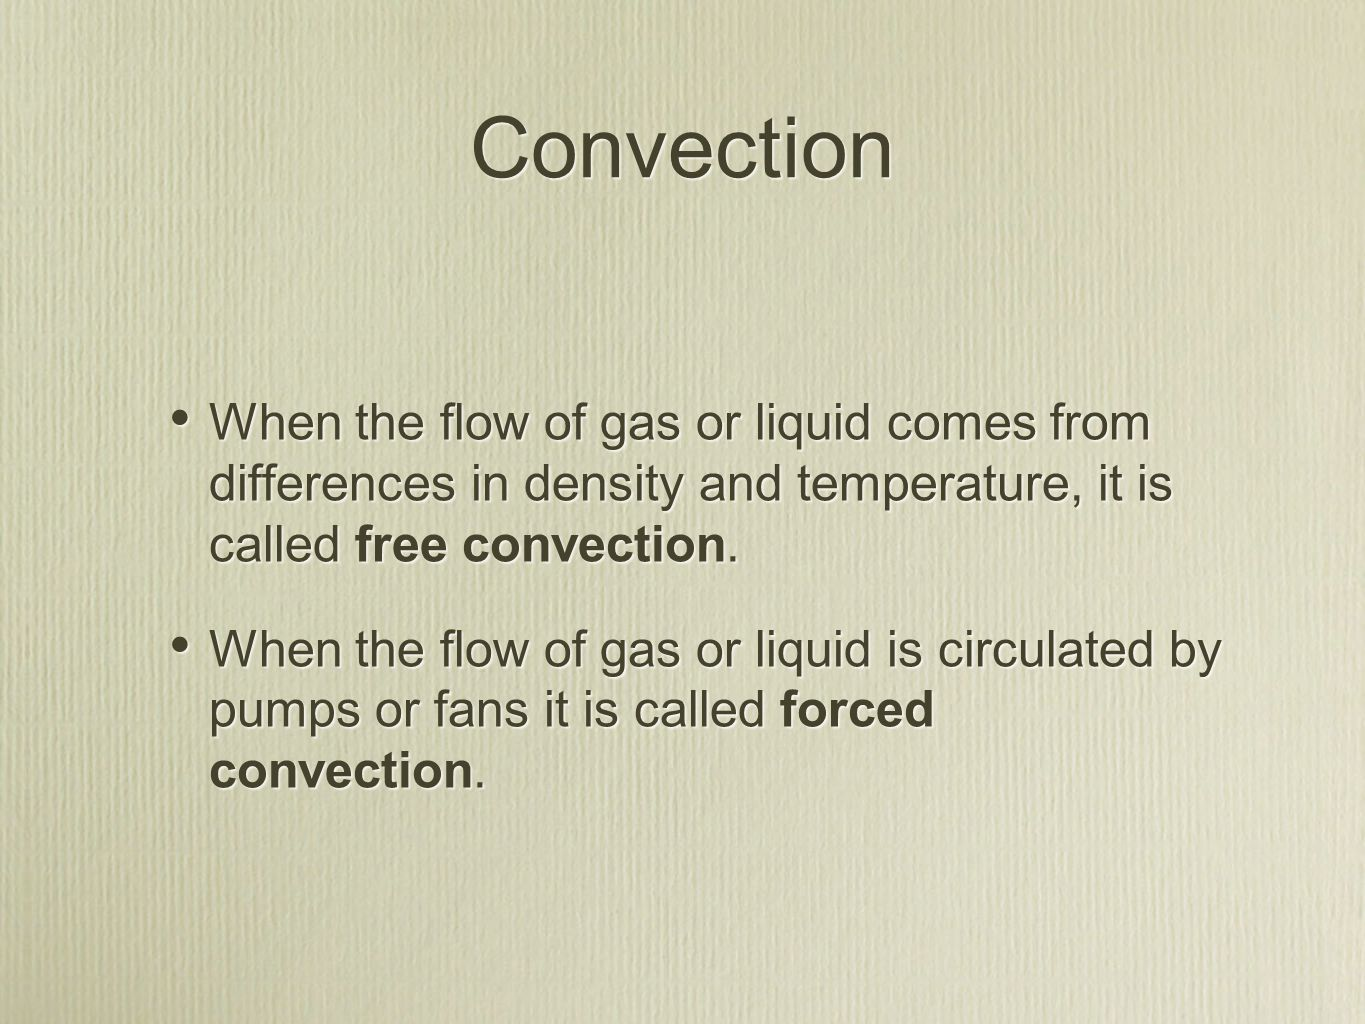 Convection When the flow of gas or liquid comes from differences in density and temperature, it is called free convection. When the flow of gas or liq